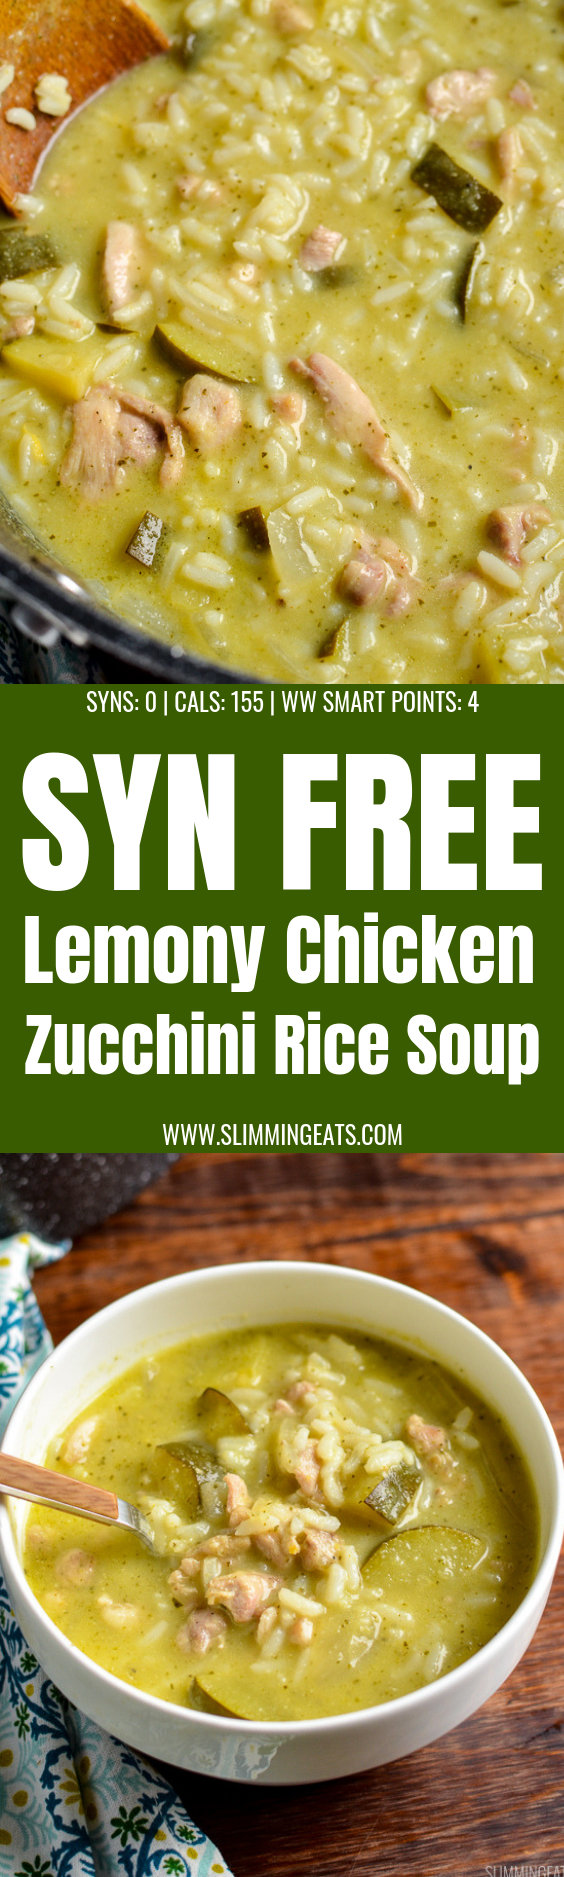 Complete meal in a bowl with the delicious Syn Free Lemony Chicken Zucchini Rice Soup | gluten free, dairy free, Slimming World and Weight Watchers friendly